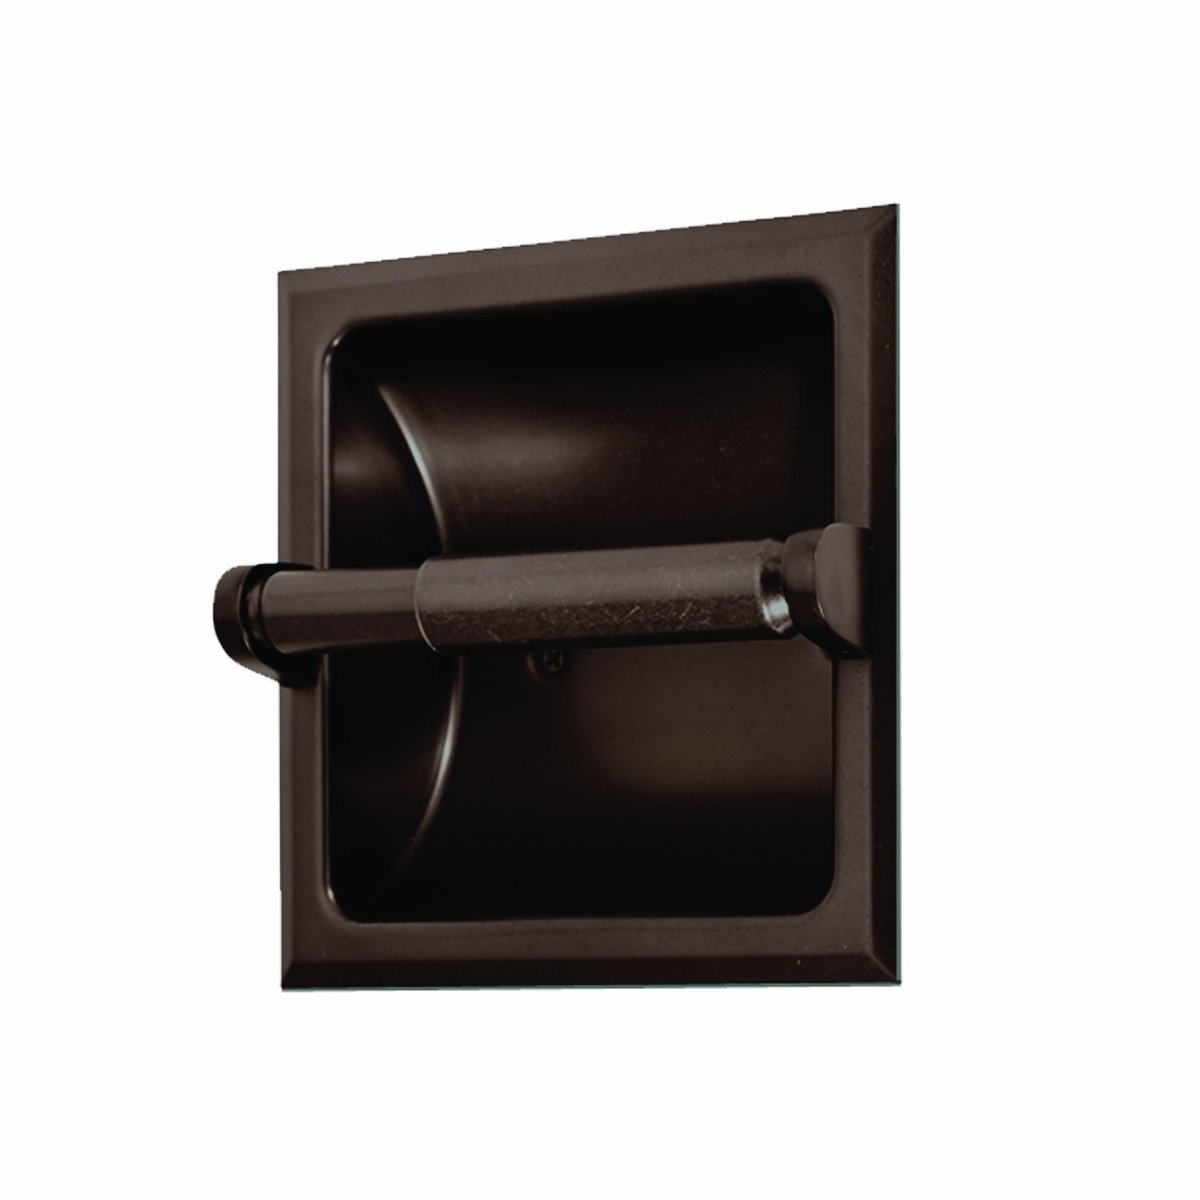 Recessed toilet paper holder from gatco cool ideas for home - Ceramic recessed toilet roll holder ...